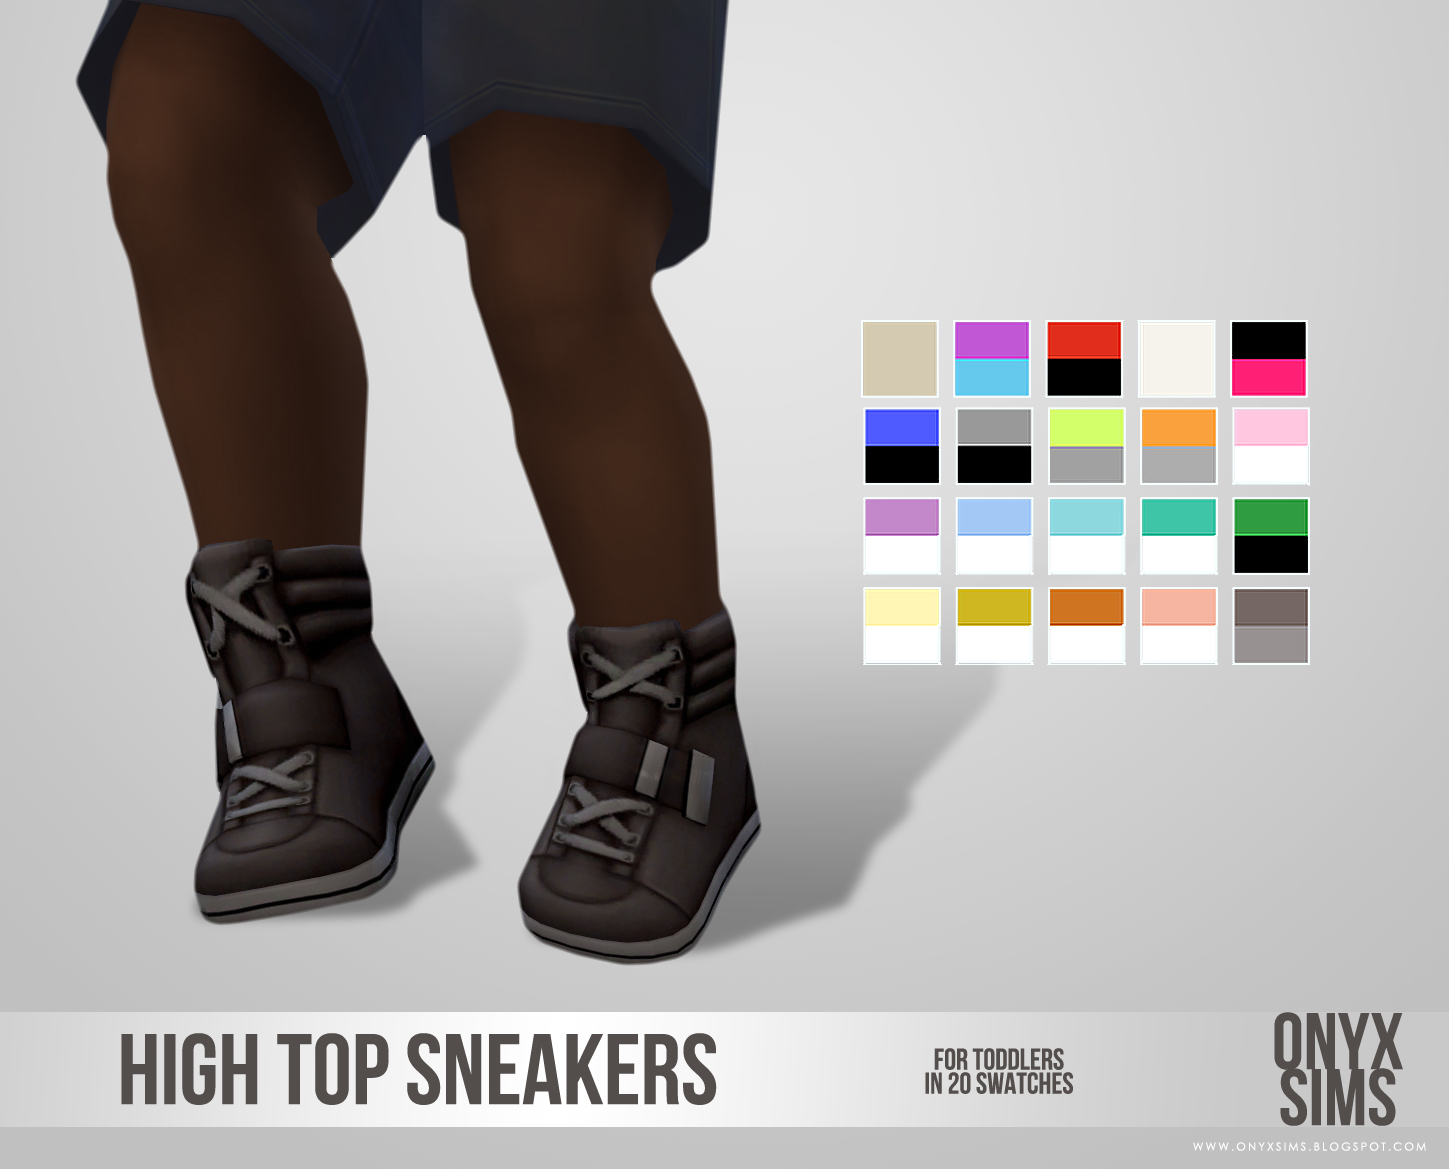 High Top Sneakers for Toddlers - Onyx Sims